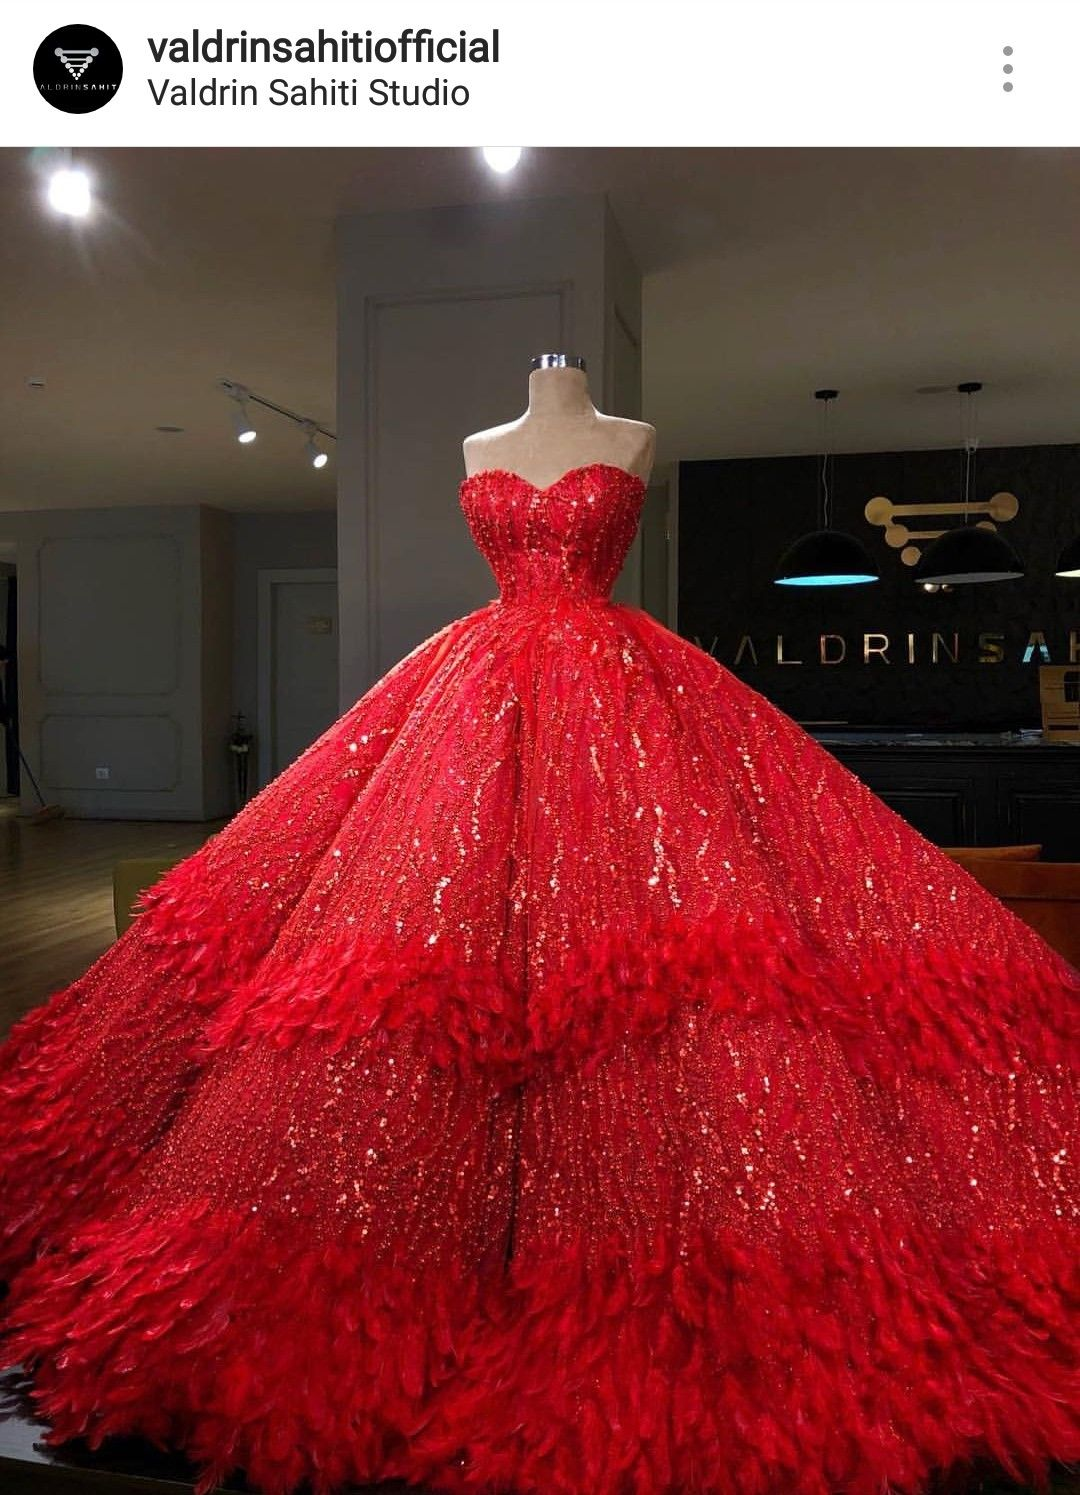 Mare Barrow Valdrin Sahiti Red Sequin Ball Gown With Feather Gowns Red Wedding Gowns Ball Dresses